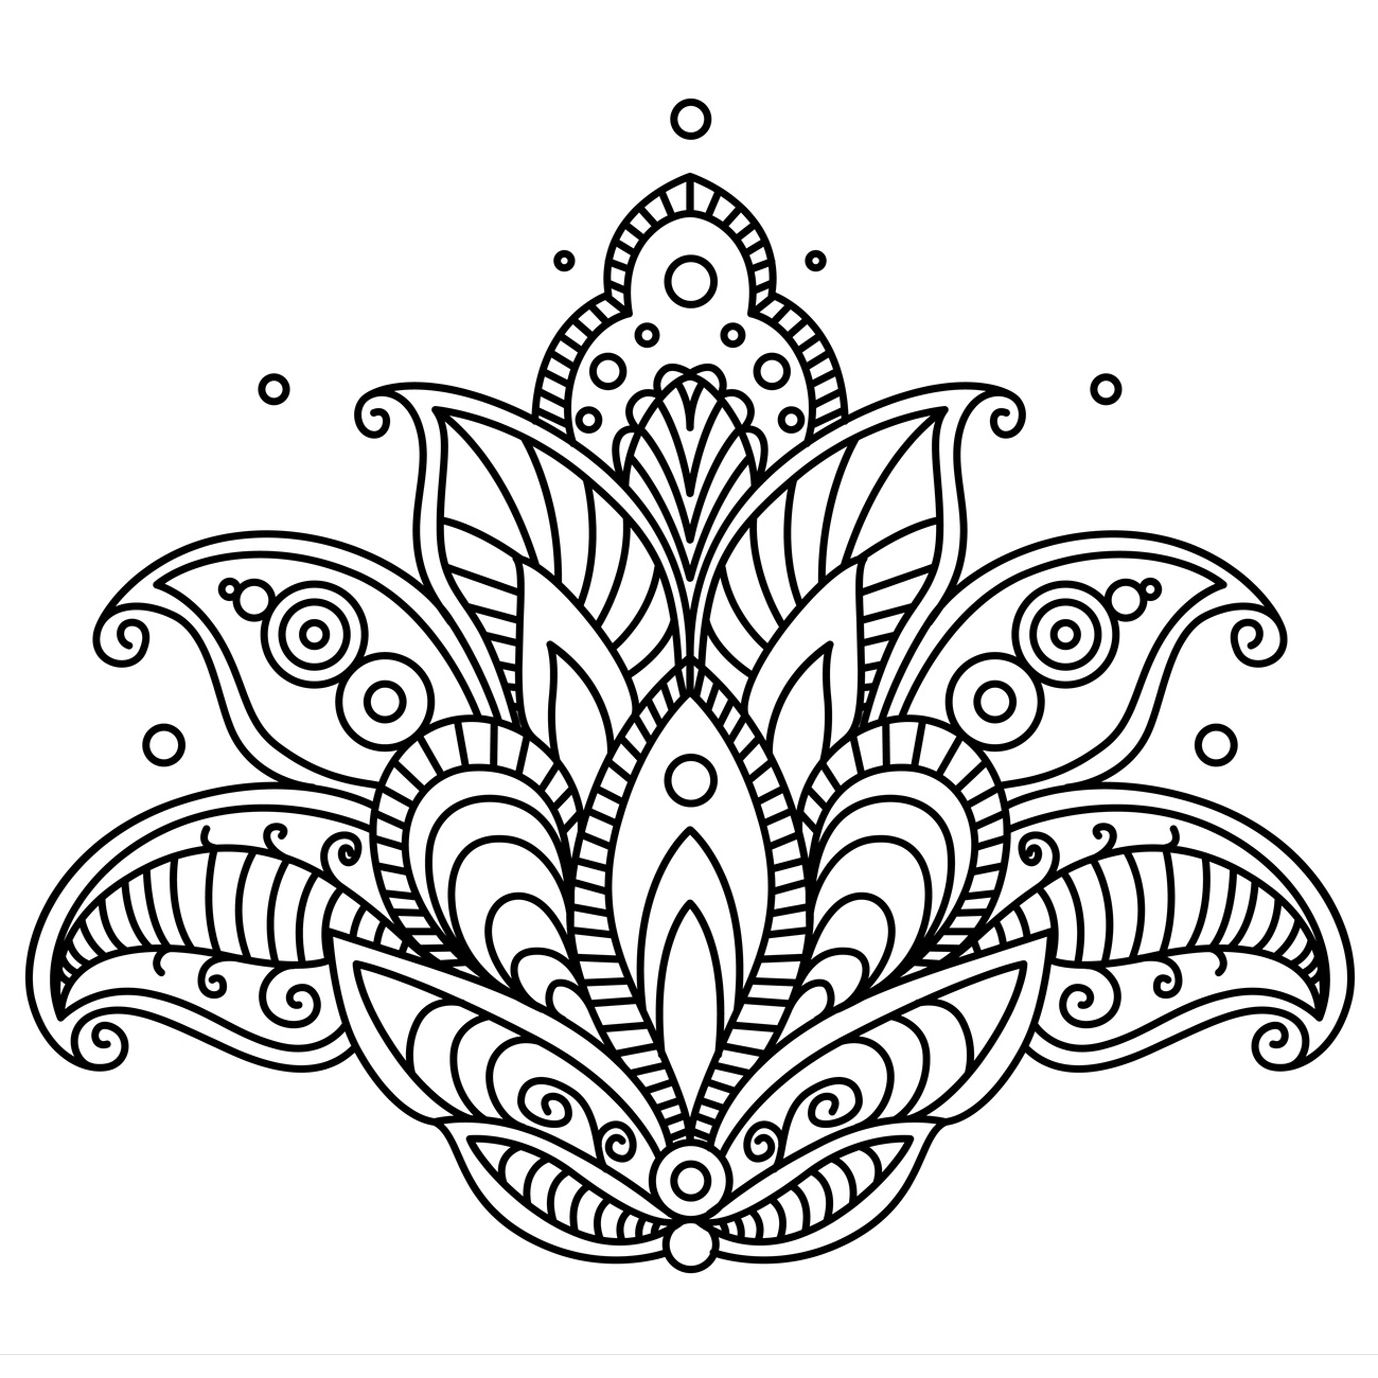 google images mandala coloring pages - photo#36